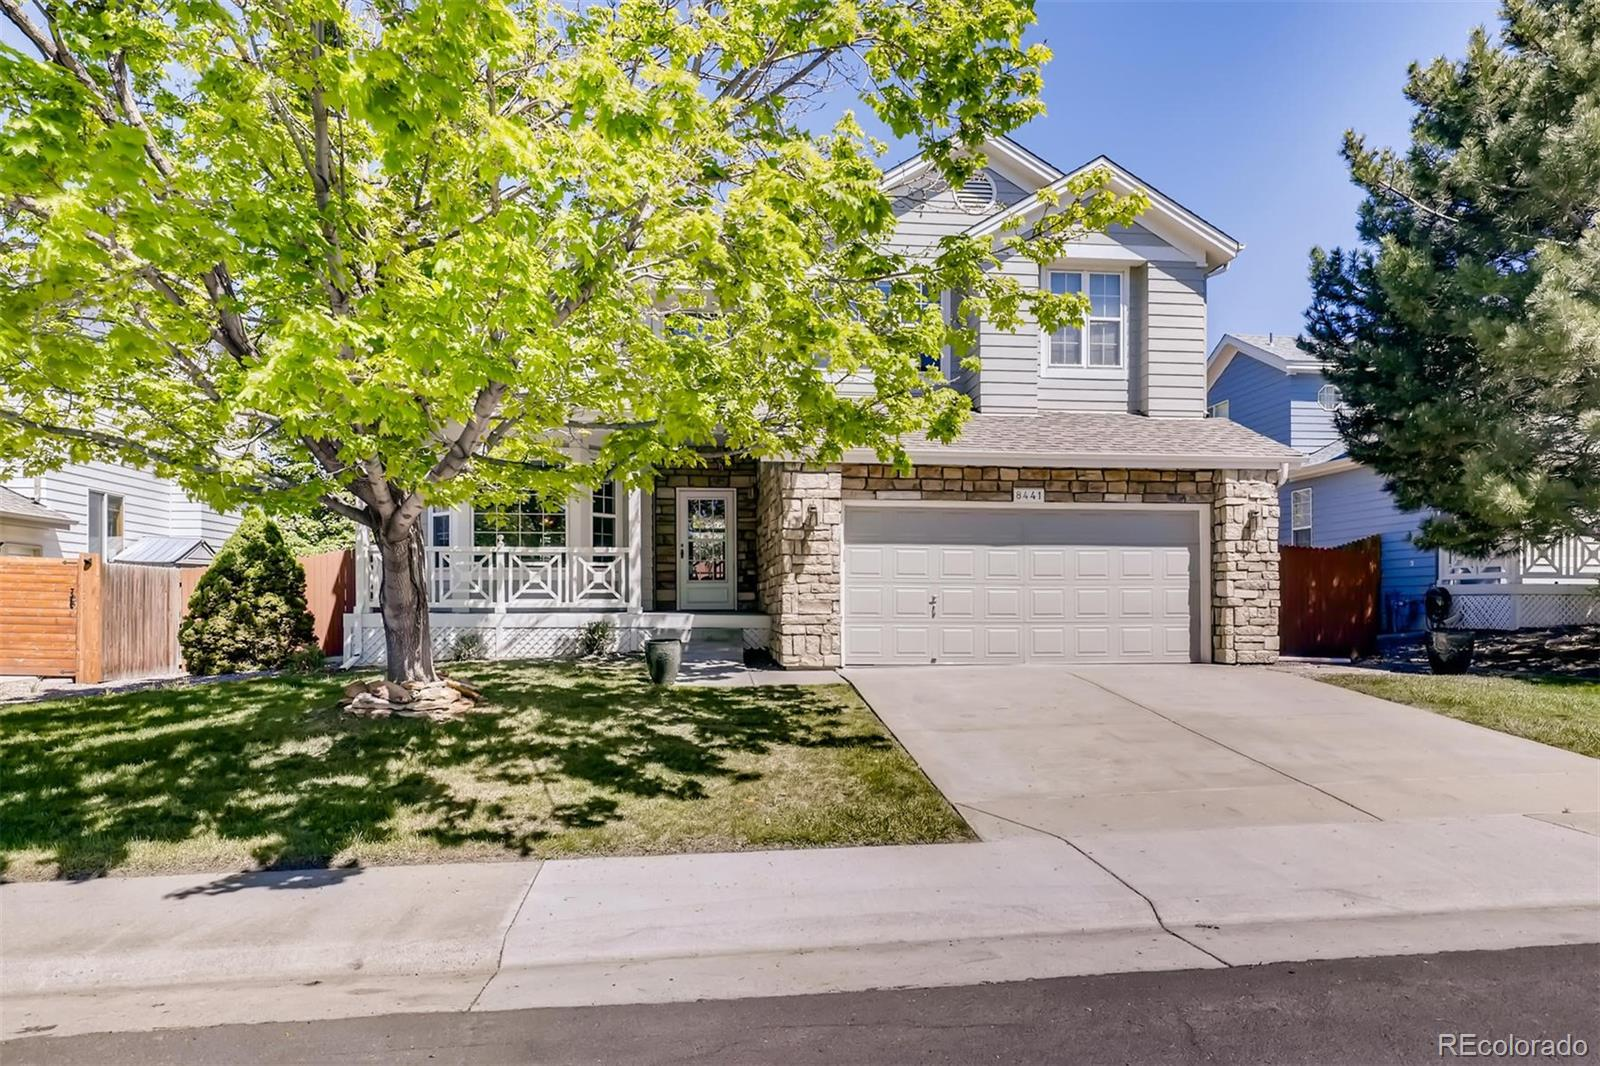 8441 W 95th Drive, Westminster, CO 80021 - Westminster, CO real estate listing